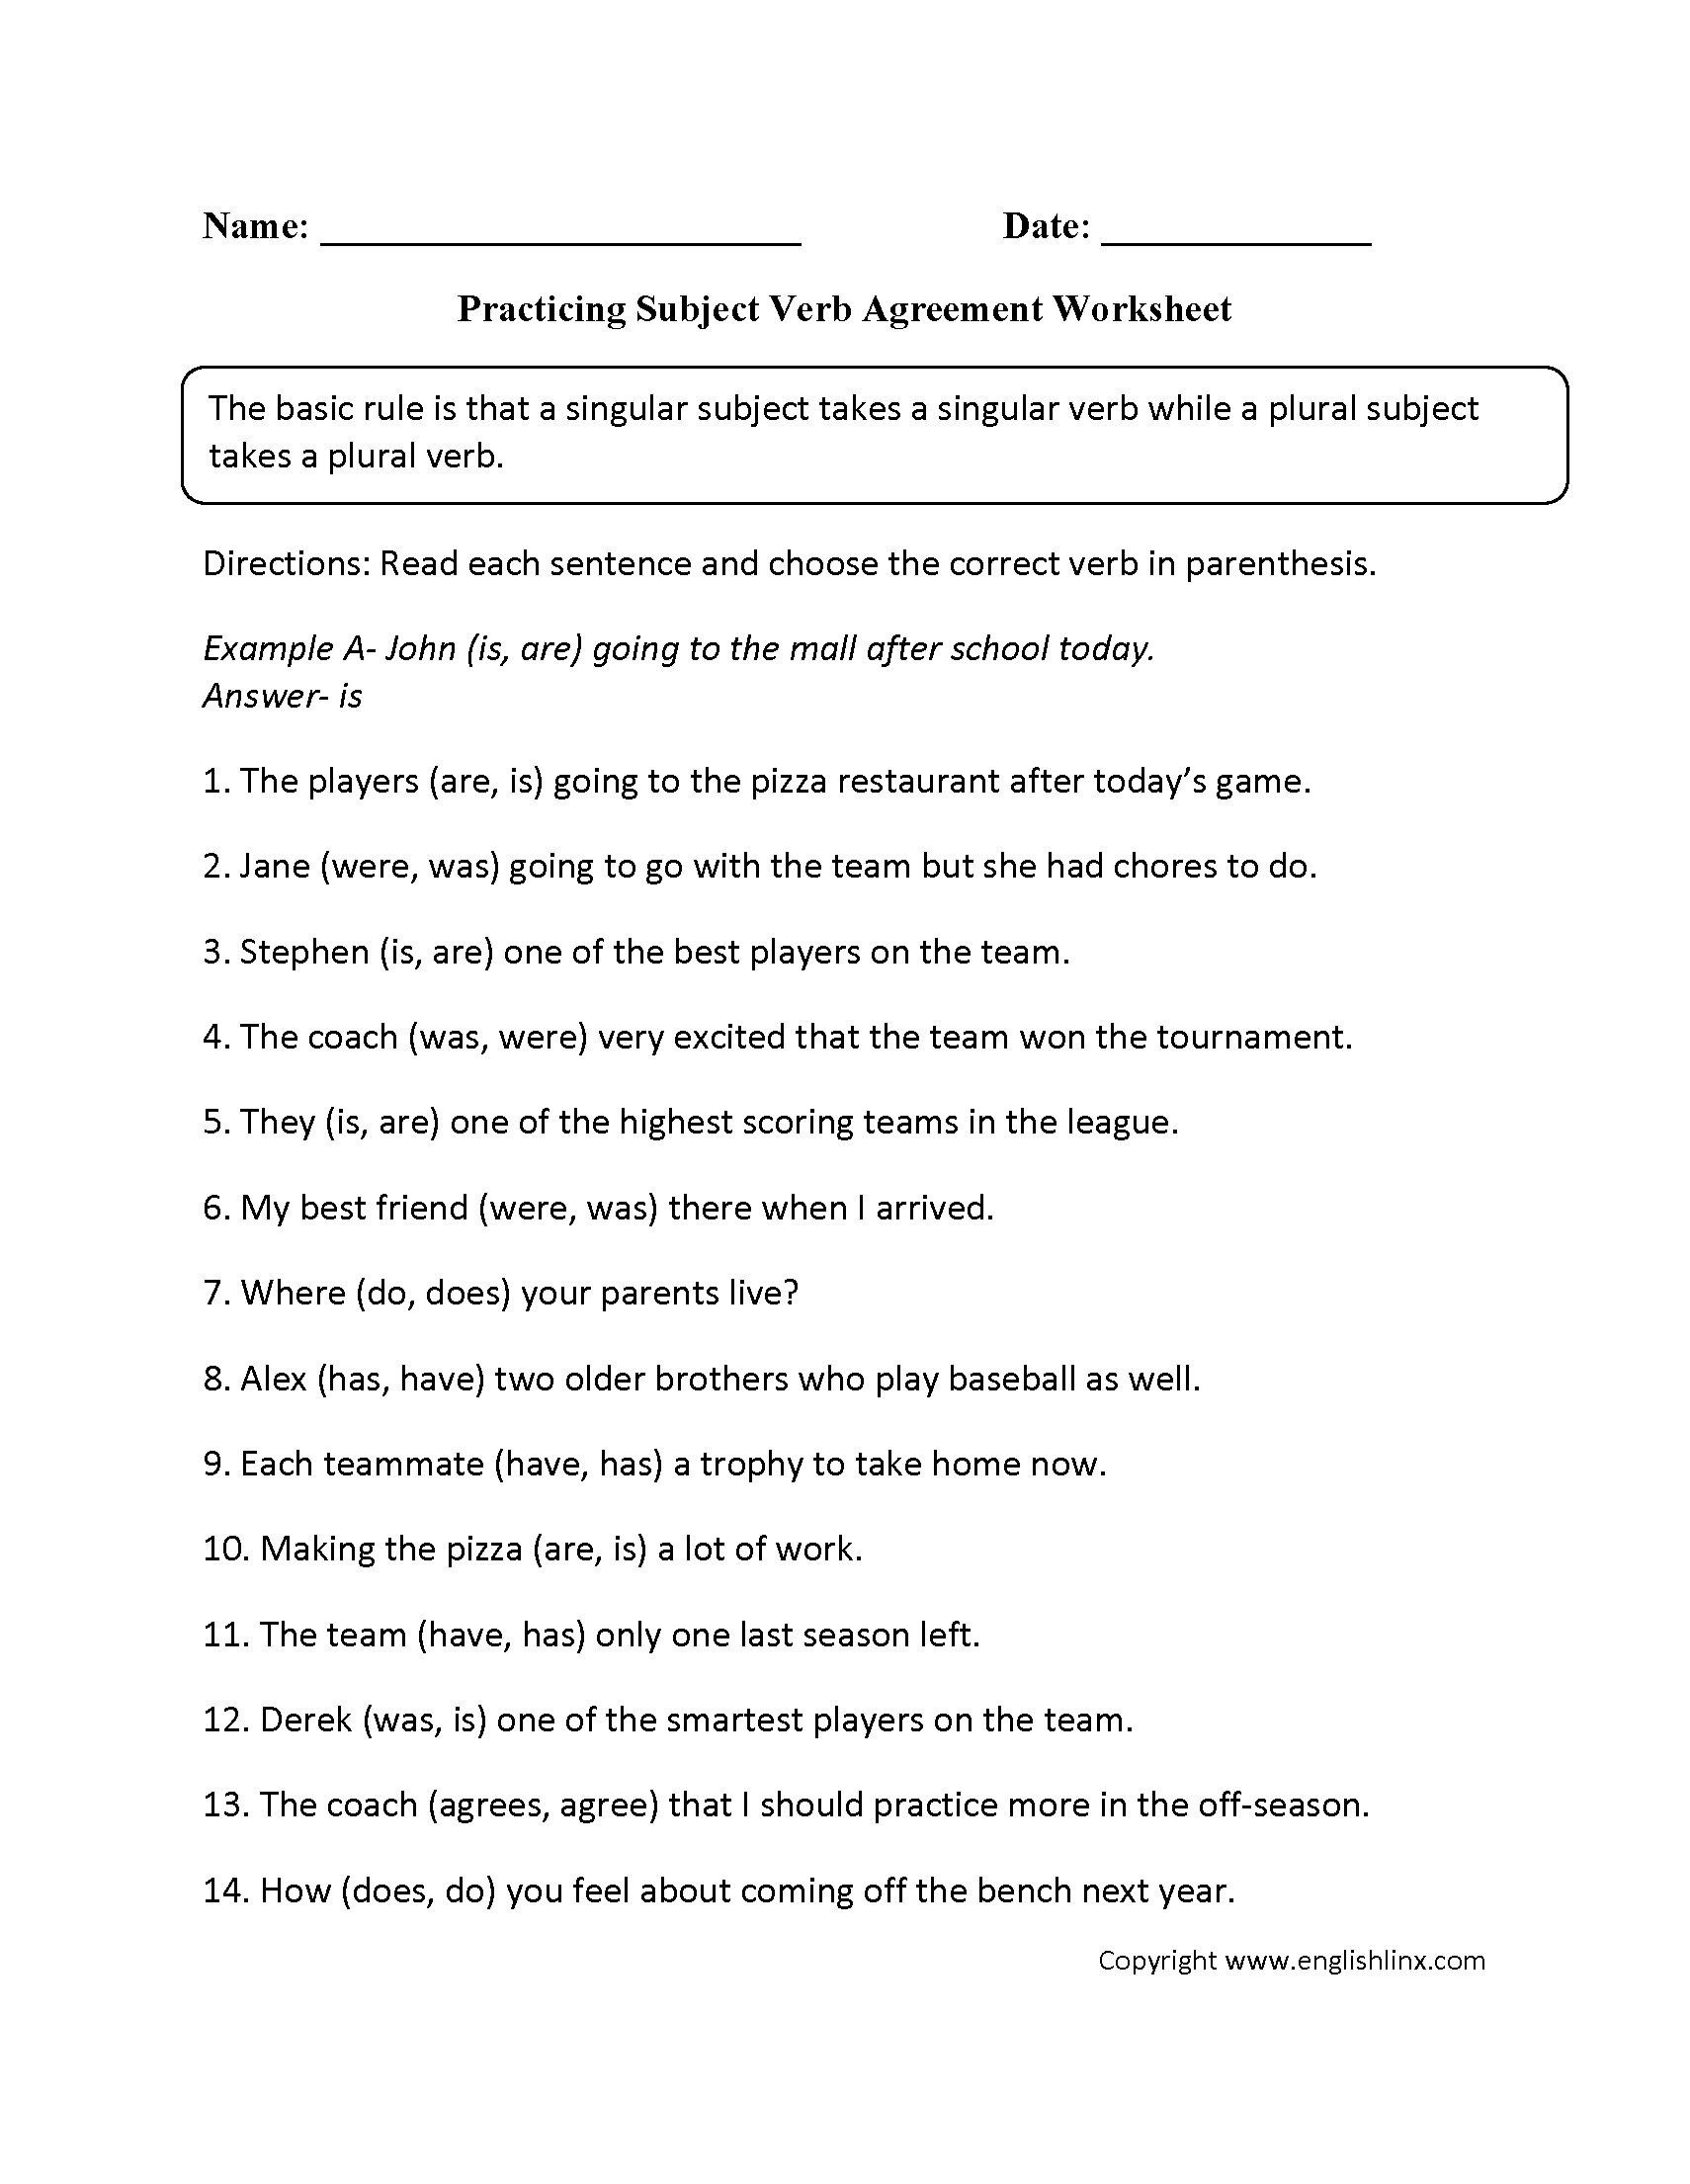 Subject Verb Agreement Worksheet Pdf With Answers